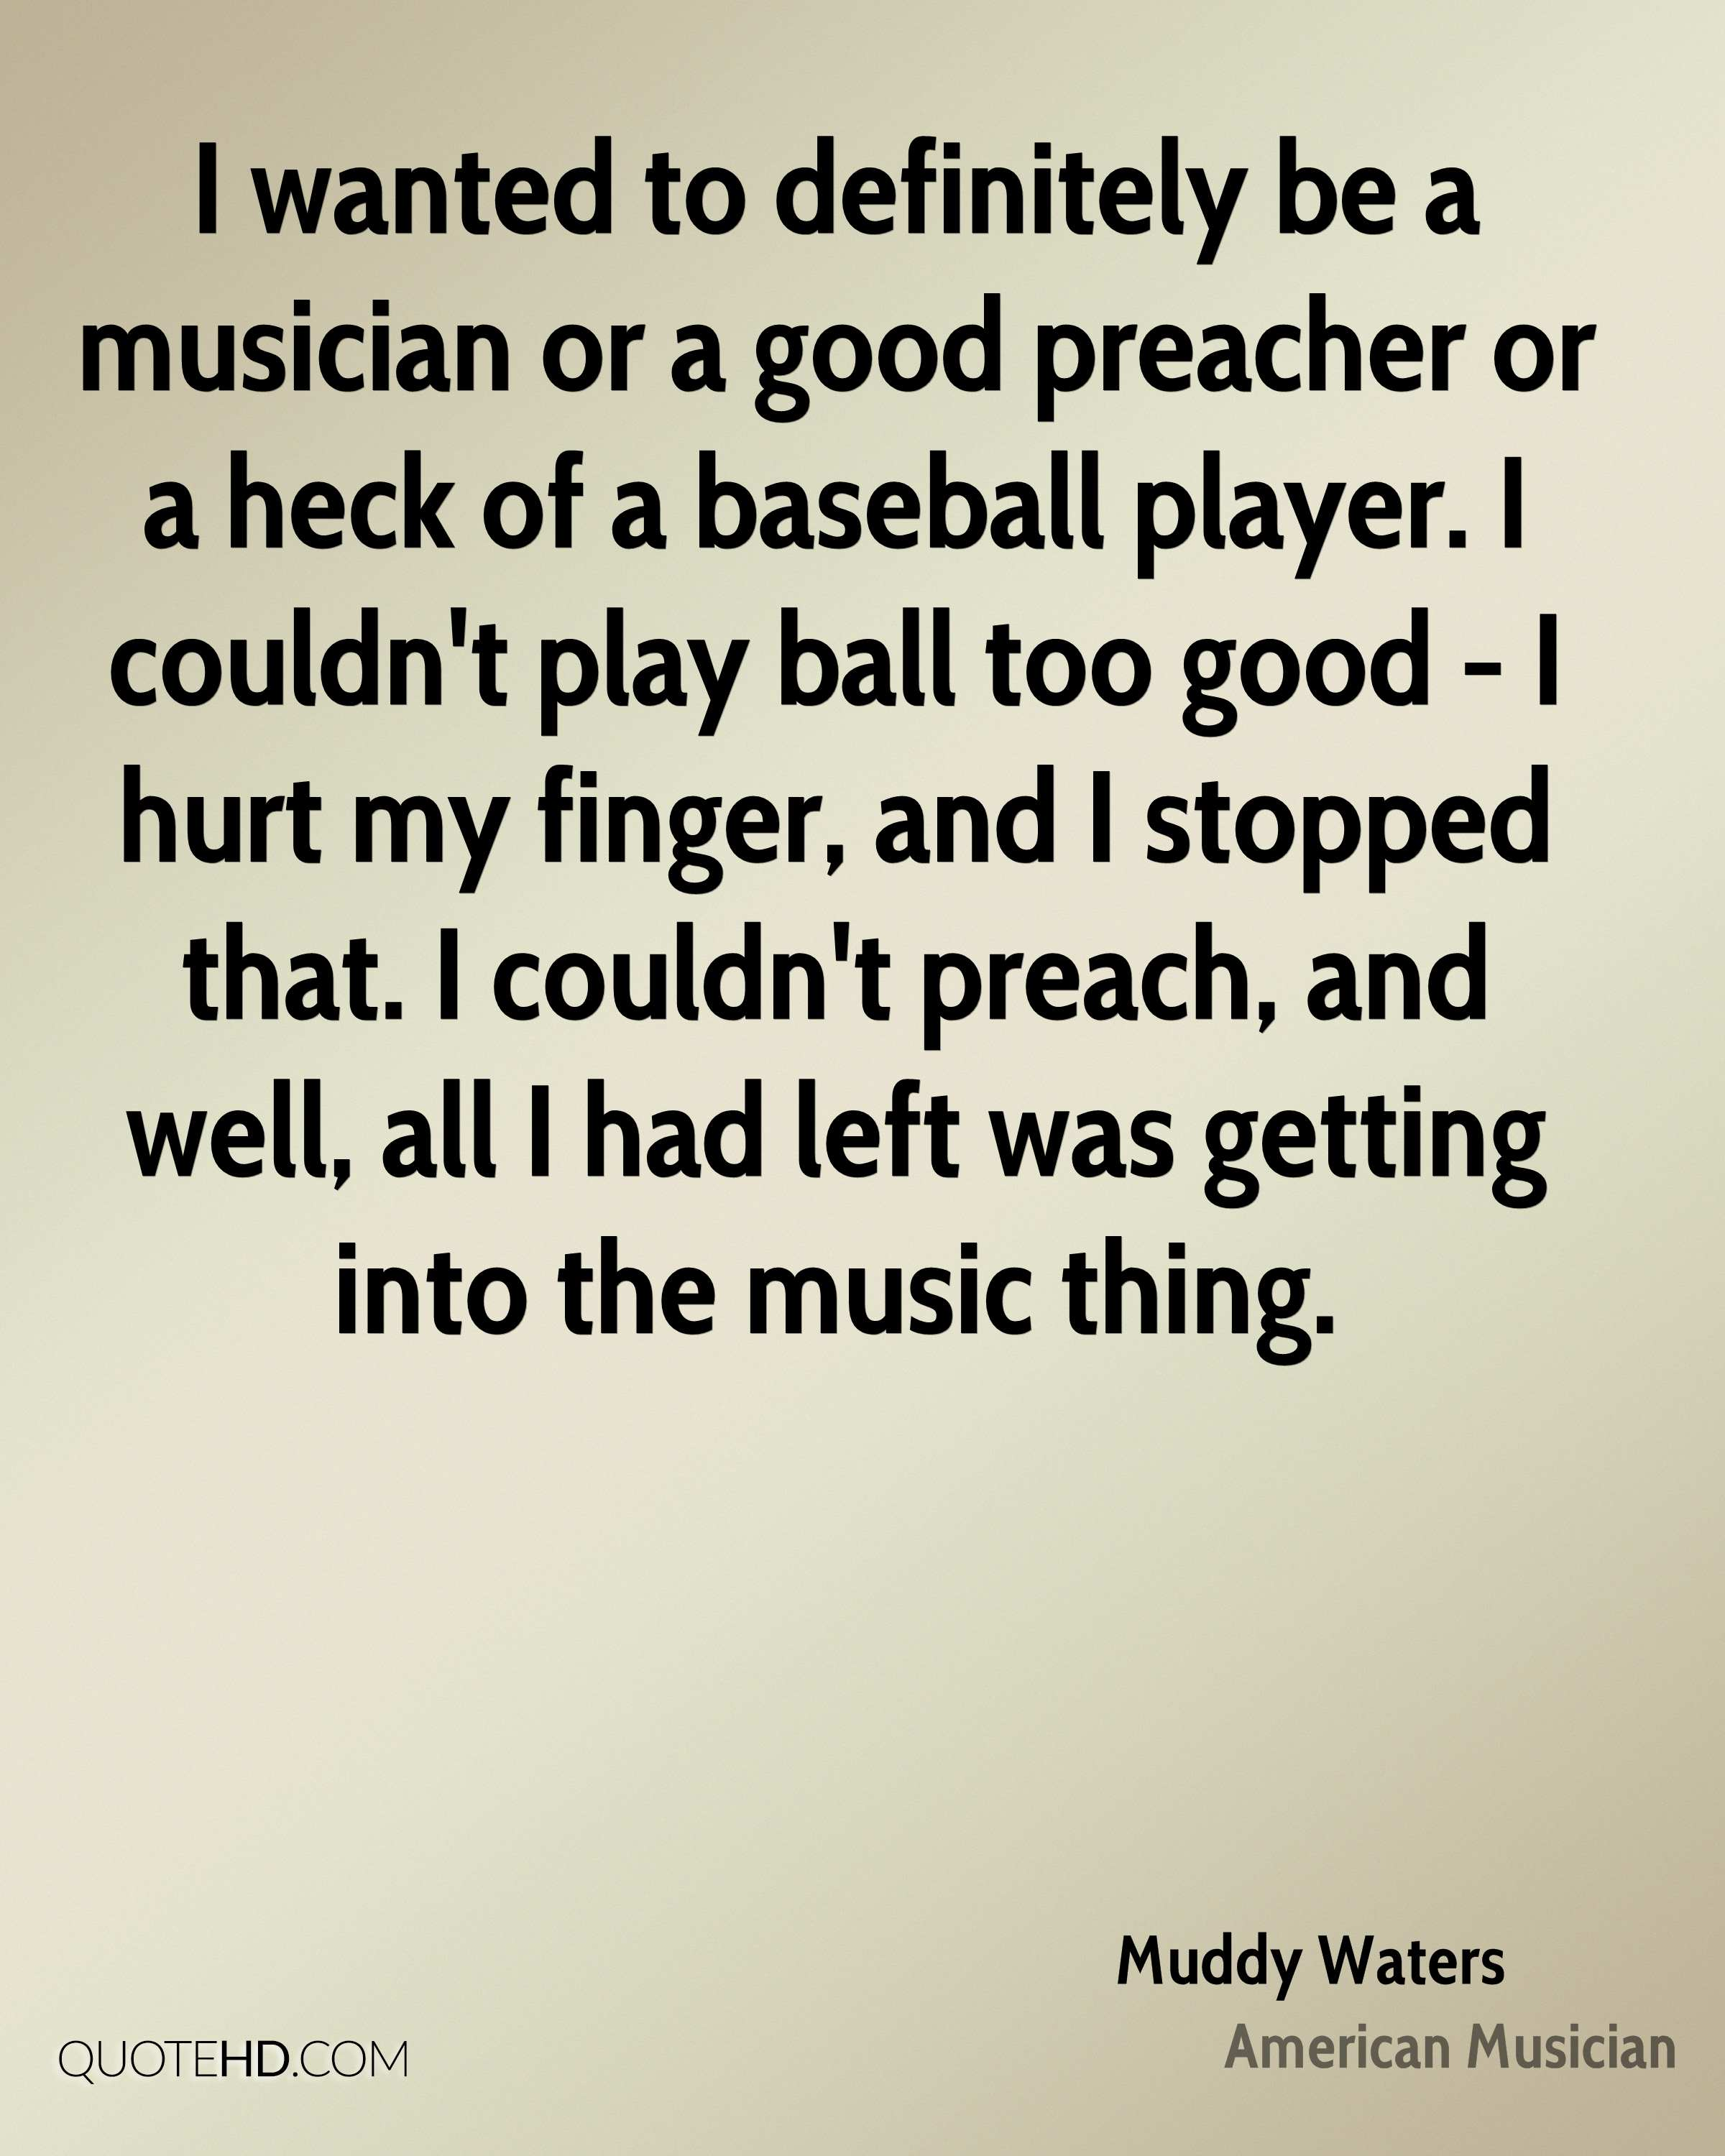 I wanted to definitely be a musician or a good preacher or a heck of a baseball player. I couldn't play ball too good - I hurt my finger, and I stopped that. I couldn't preach, and well, all I had left was getting into the music thing.